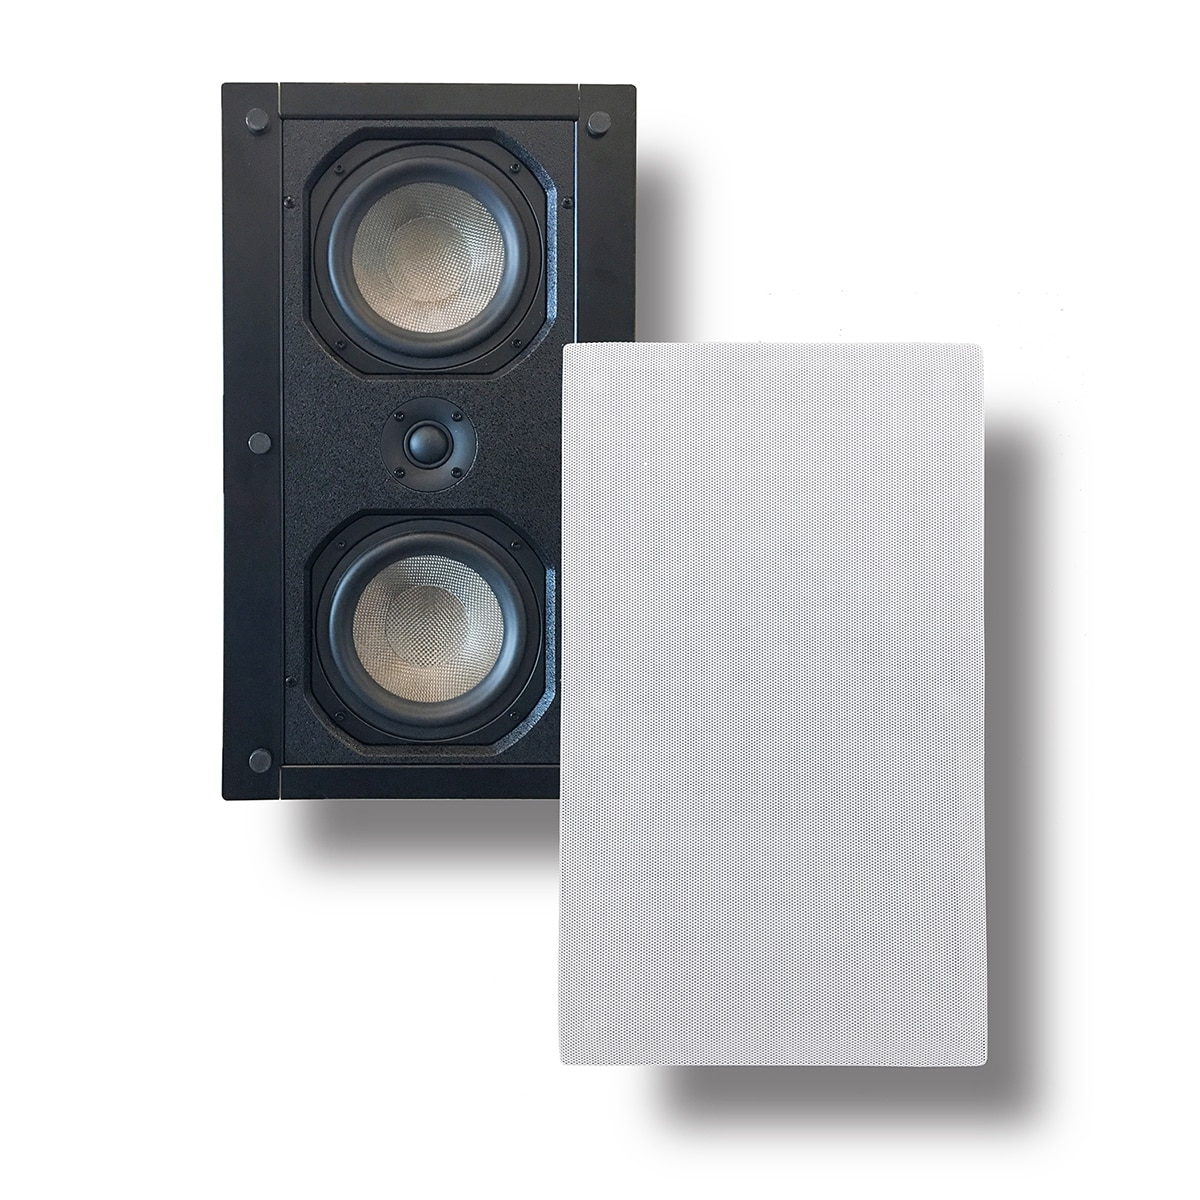 In Wall Speakers: Maxwell Series M-8600 Grille